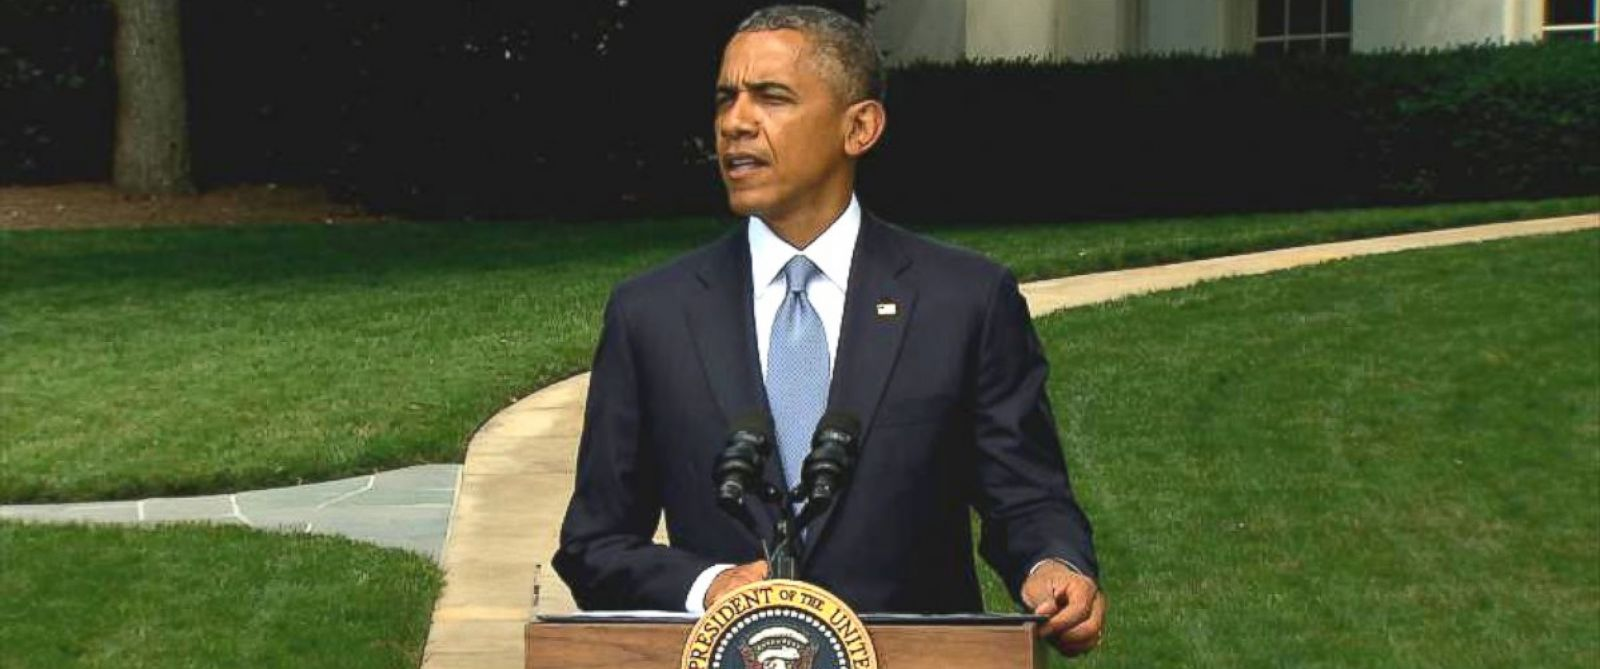 PHOTO: President Obama delivers a statement on the situation in Ukraine during a press conference on the South Lawn of the White House, Washington, July 21, 2014.